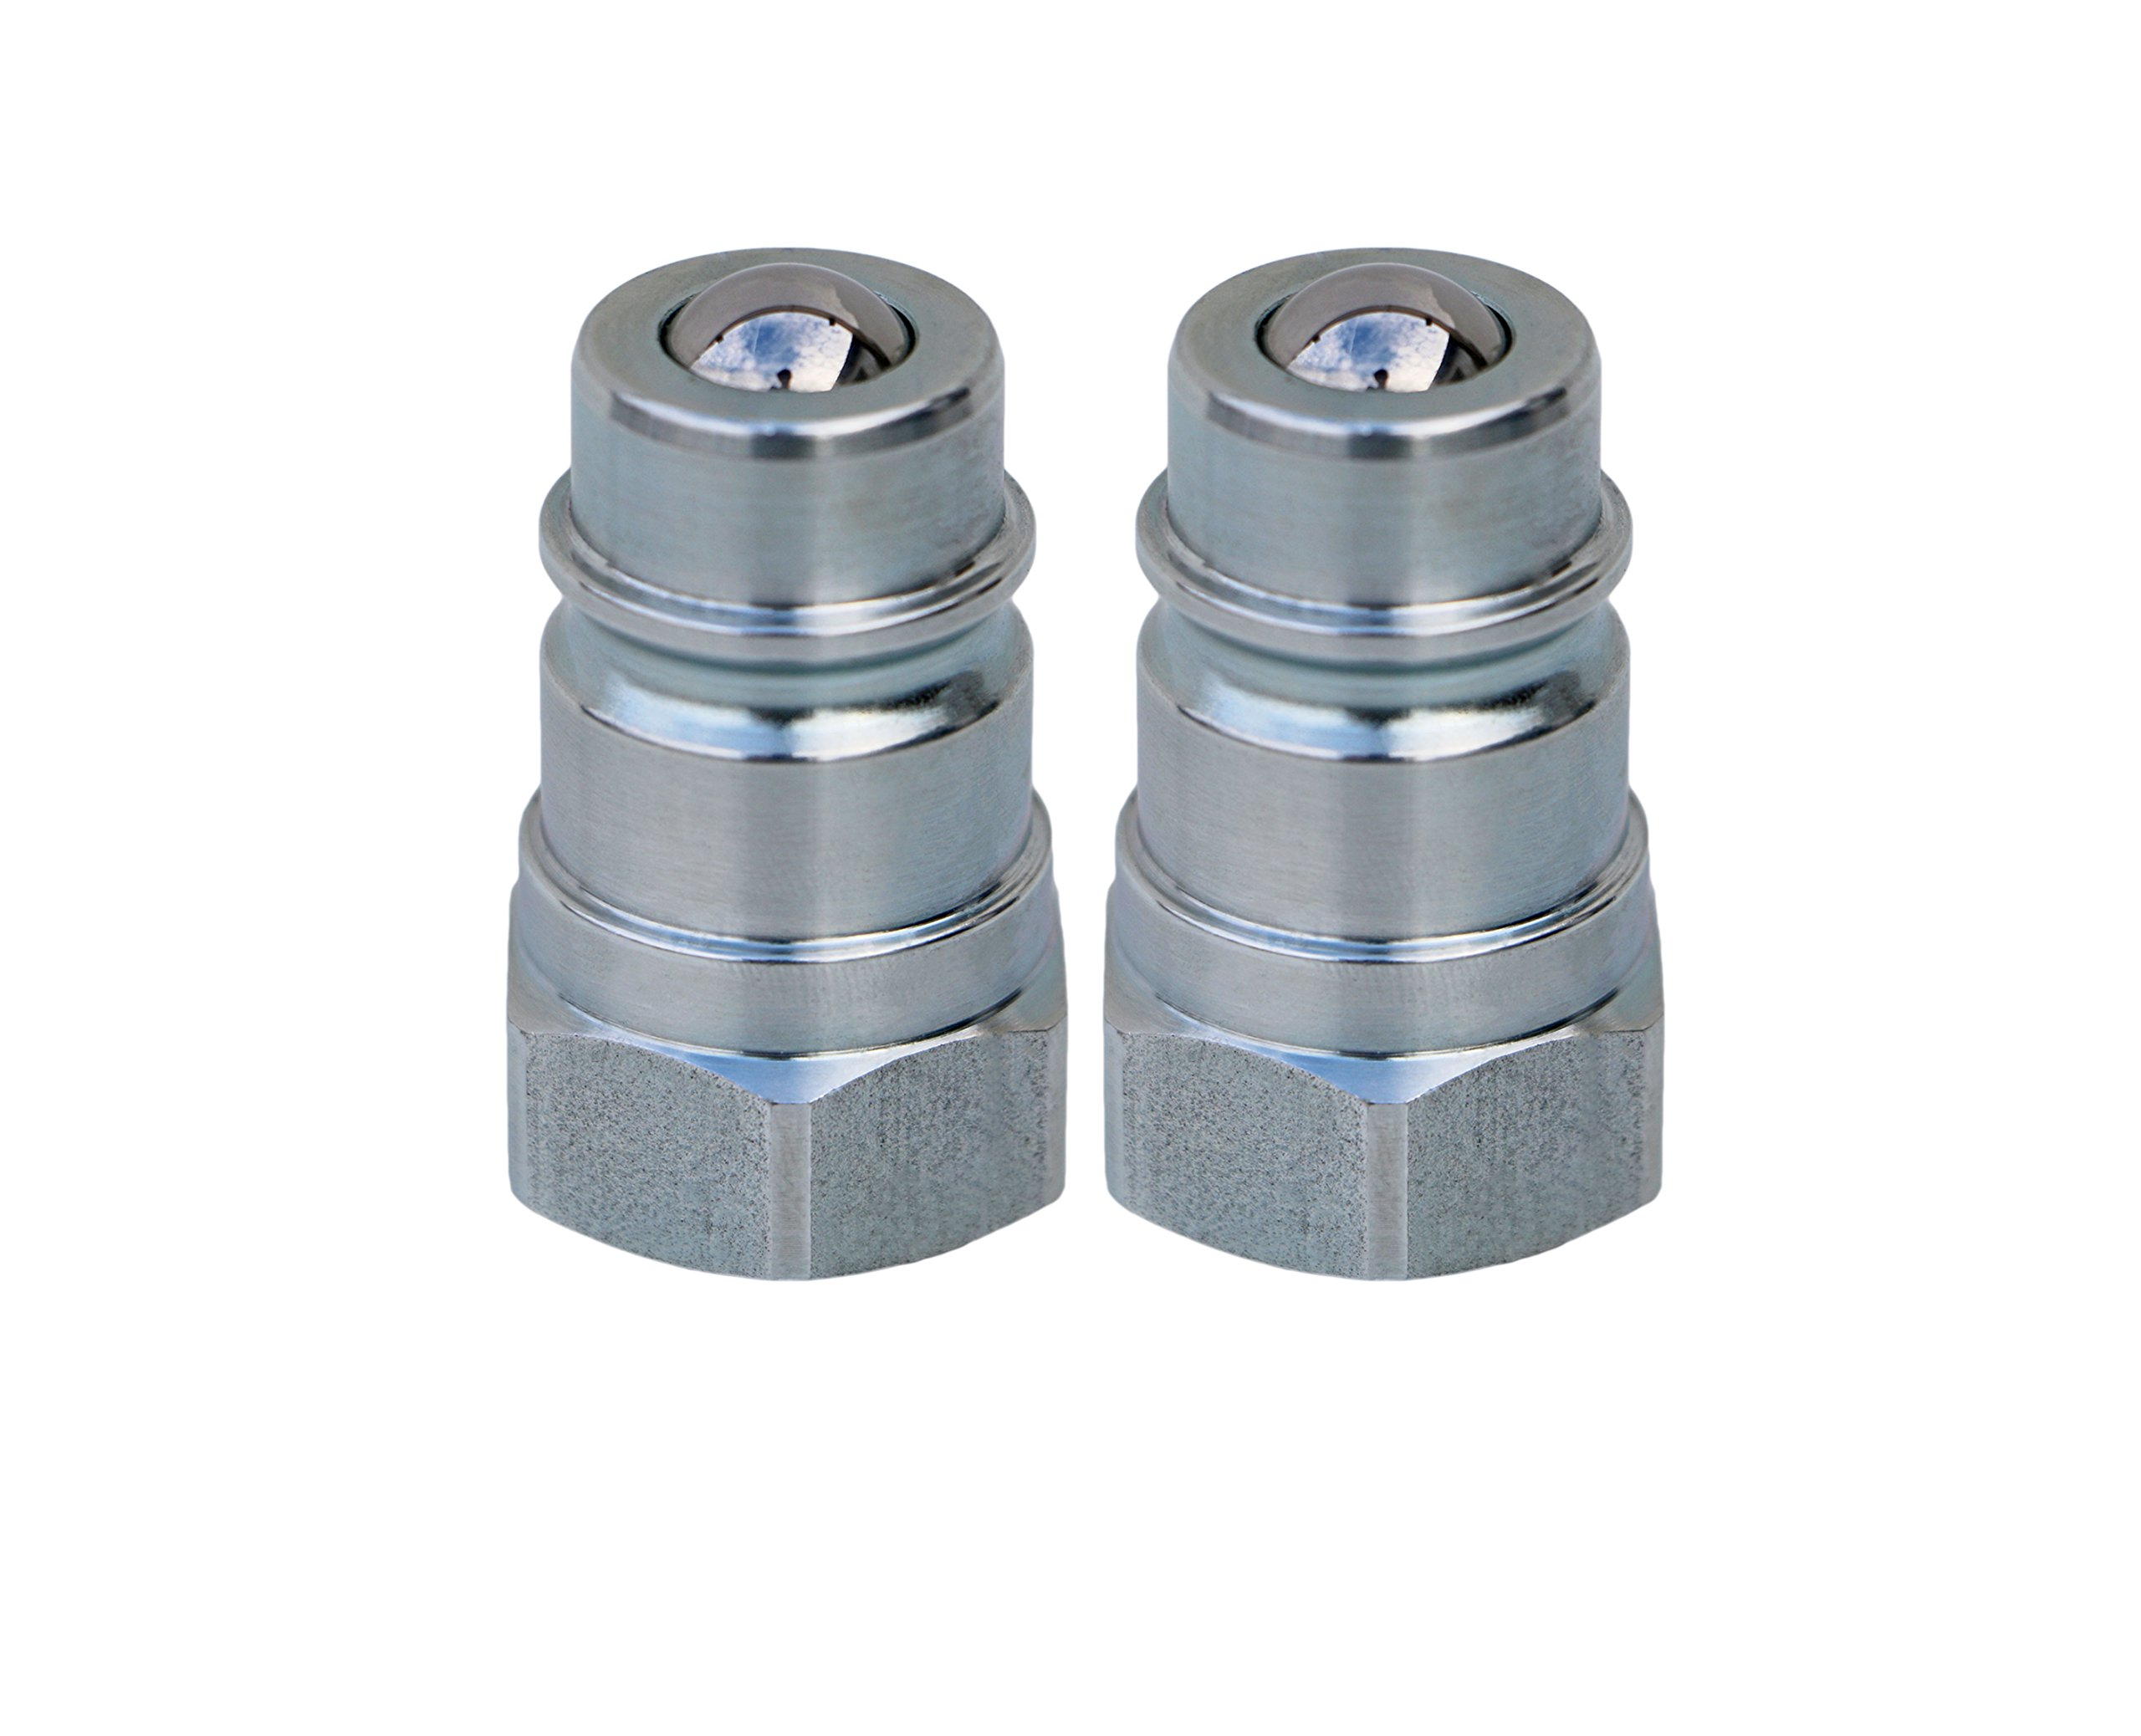 TL38-M 2 pack Ag Quick Coupler male nipple - Ball Style used on Most Tractors and Machinery - Hydraulic Tractor Coupling - Iso5675 1/2'' NPT